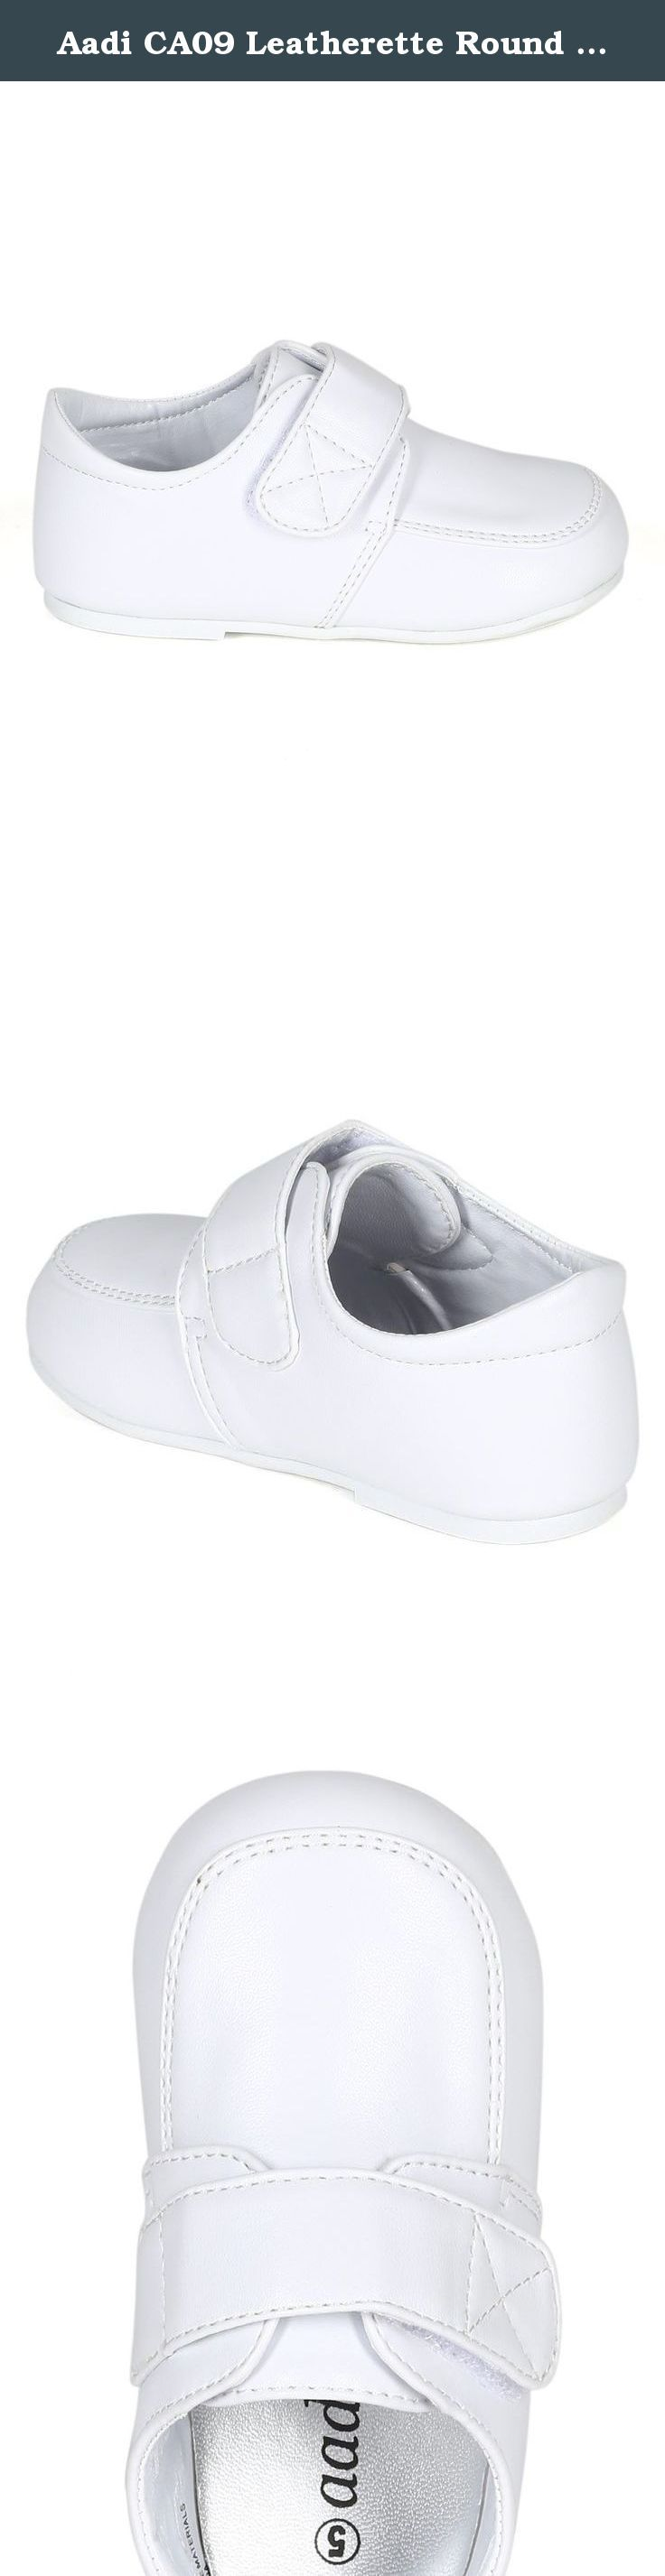 Aadi CA09 Leatherette Round Toe Velcro Strap School Shoe (Infant/ Toddler/ Little Boy) - White (Size: Infant 1). The perfect versatile school shoe for your little boy! Designed with leatherette upper, round toe front, stitch details, single velcro strap at opening, flat heel, and extra padded insoles for comfort.